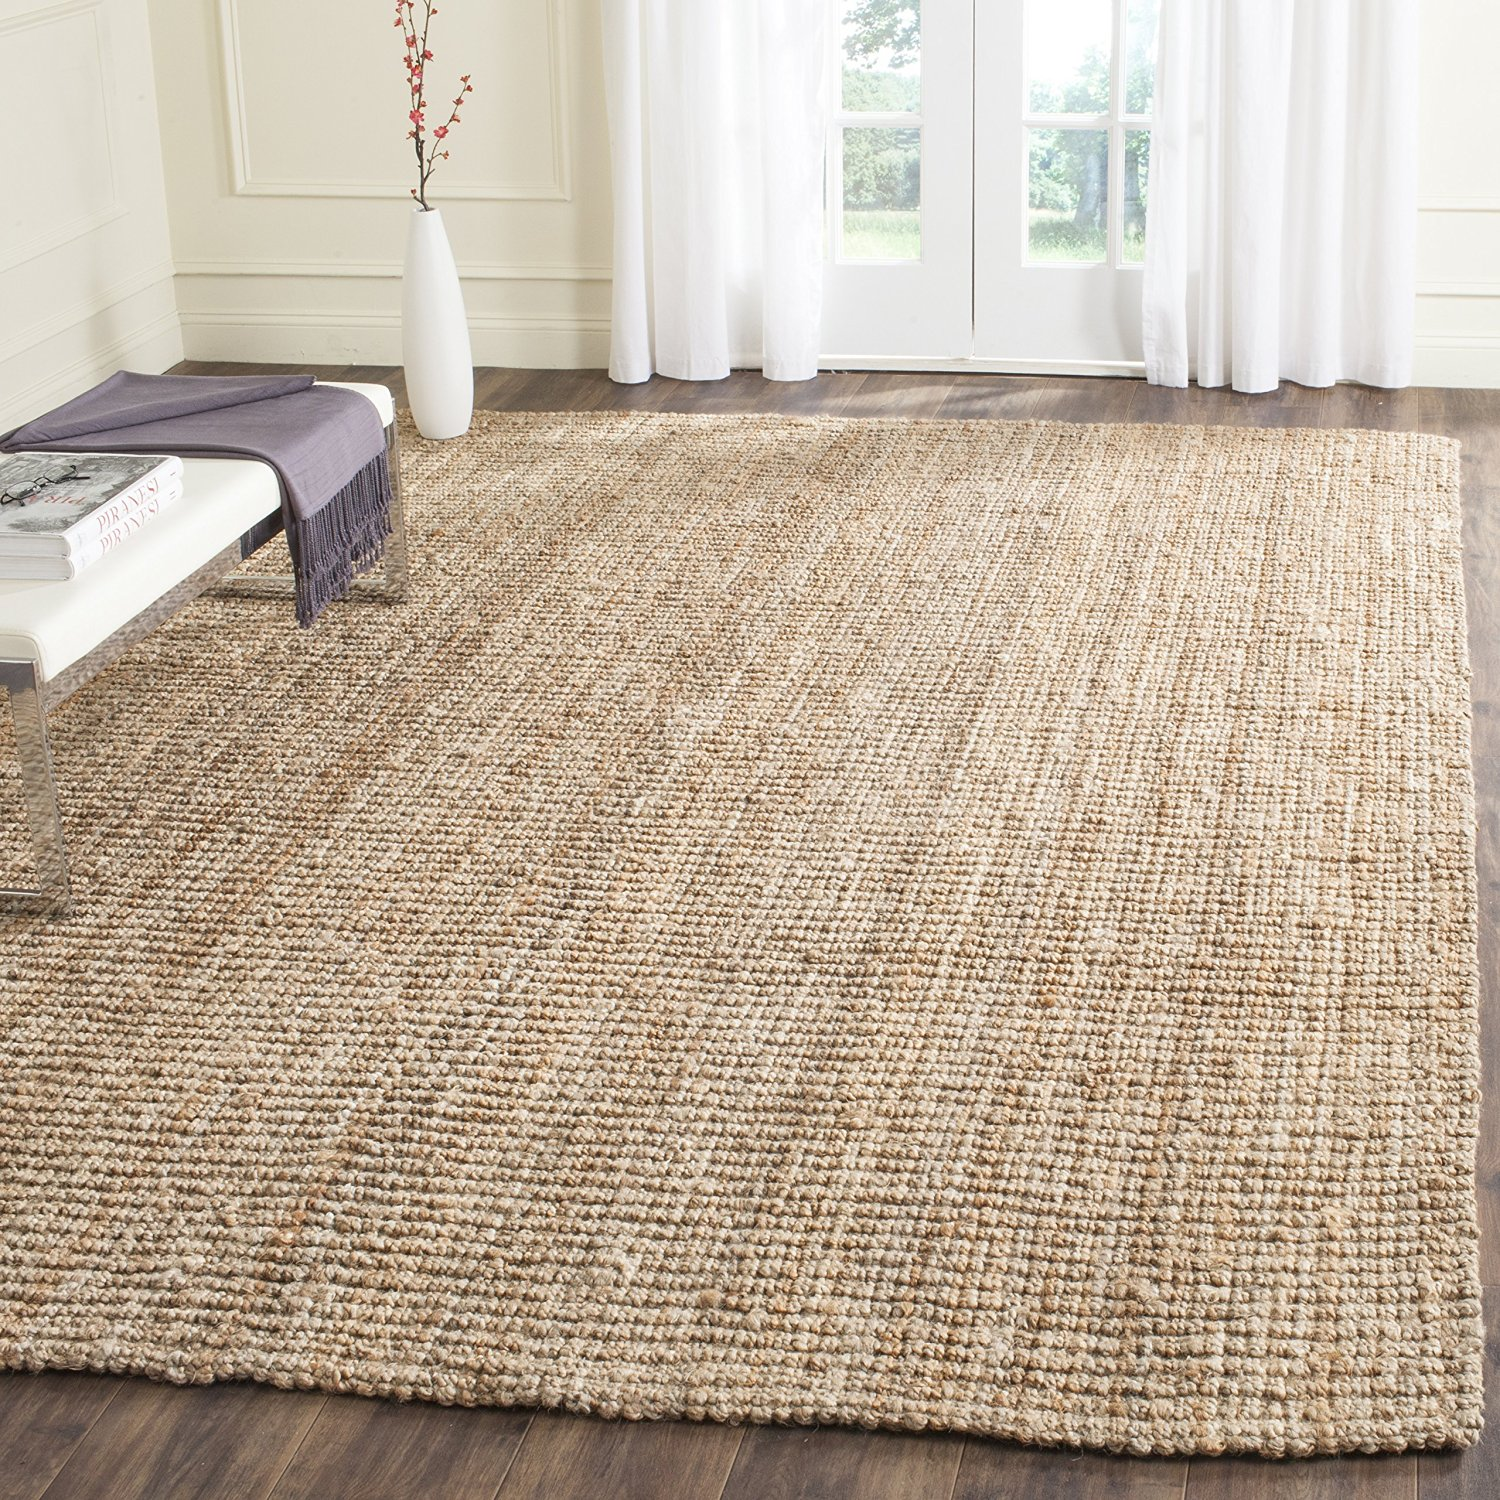 Jute rugs: things you should know